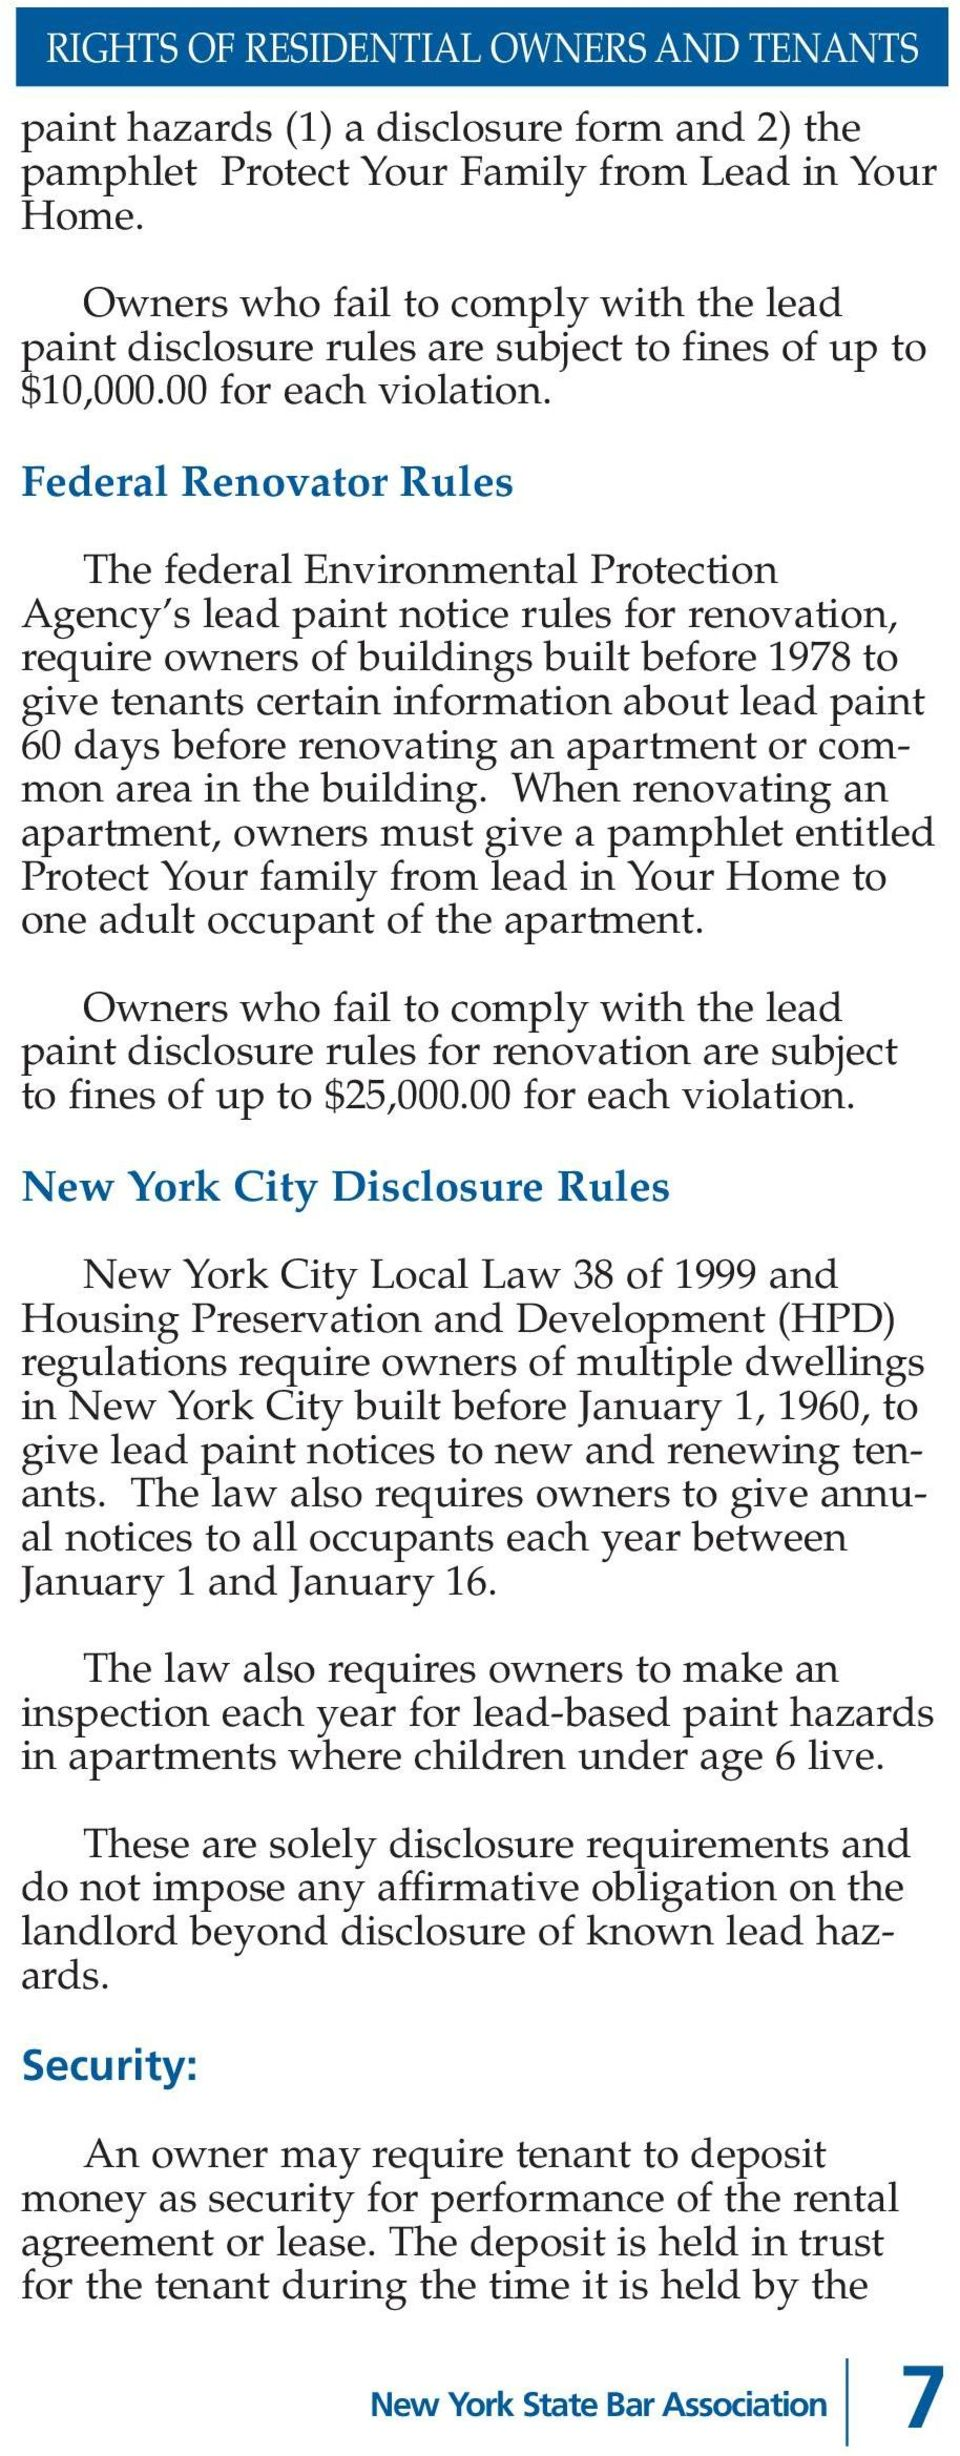 Federal Renovator Rules The federal Environmental Protection Agency s lead paint notice rules for renovation, require owners of buildings built before 1978 to give tenants certain information about